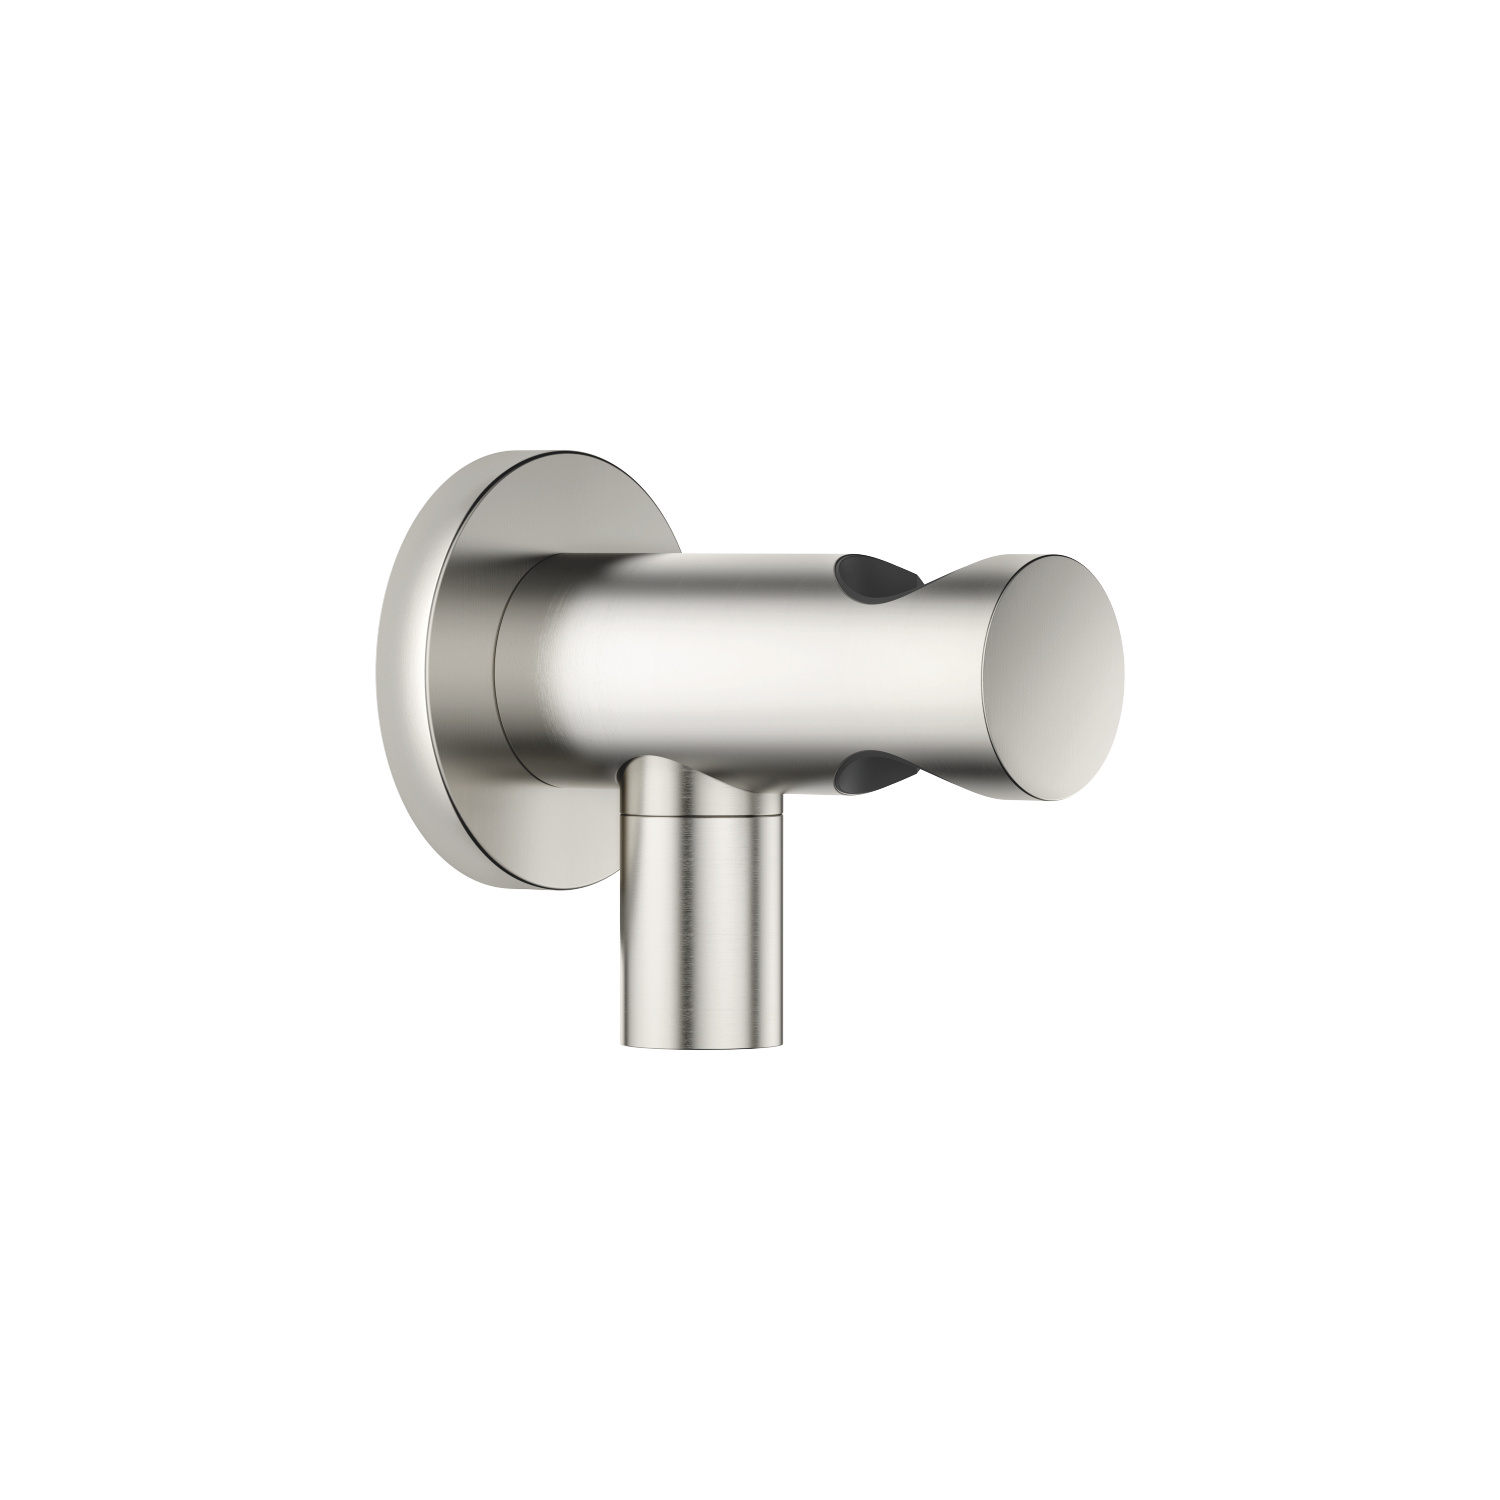 Wall elbow with integrated shower holder - platinum matt